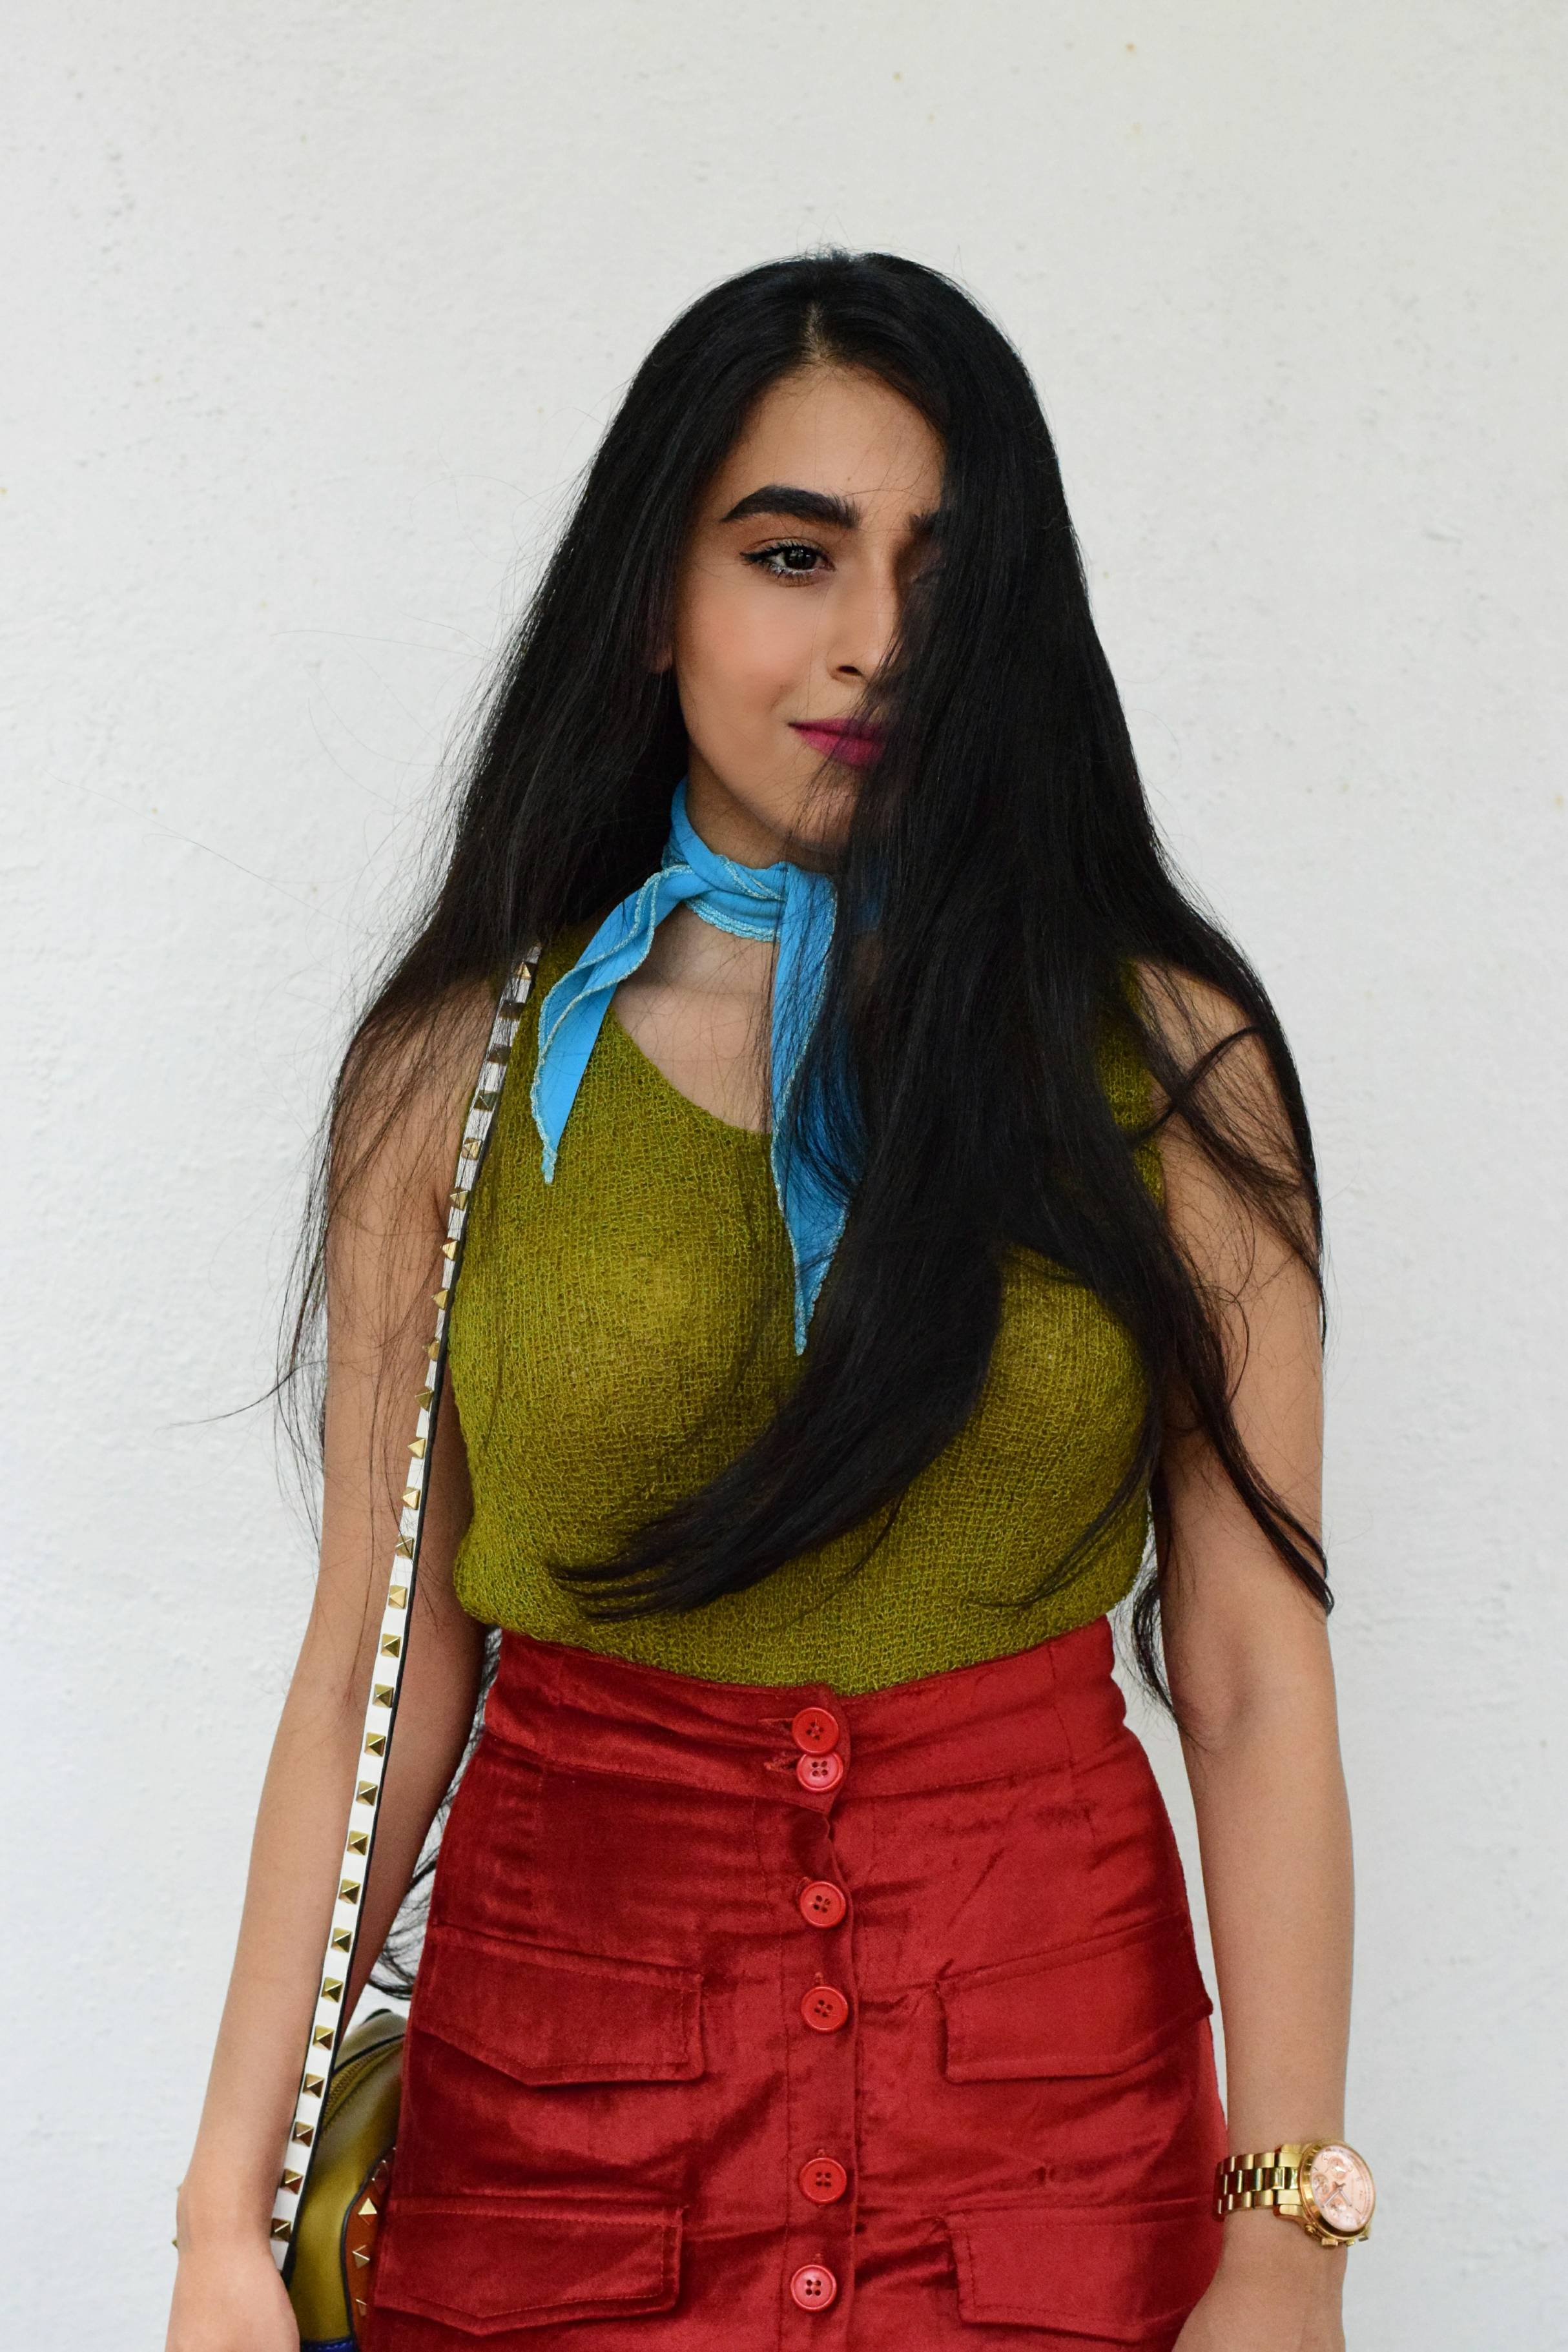 color riot, colorful style, strret style, lakme fashion week, mumbai streets, mumbai street style, fashion week, maroon skirt, skirt style, chartreuse, neck scarf, how to wear a scarf, studded bag, pink mules, mules, colorblocking, outfit, ootd, blogger, fashion blogger